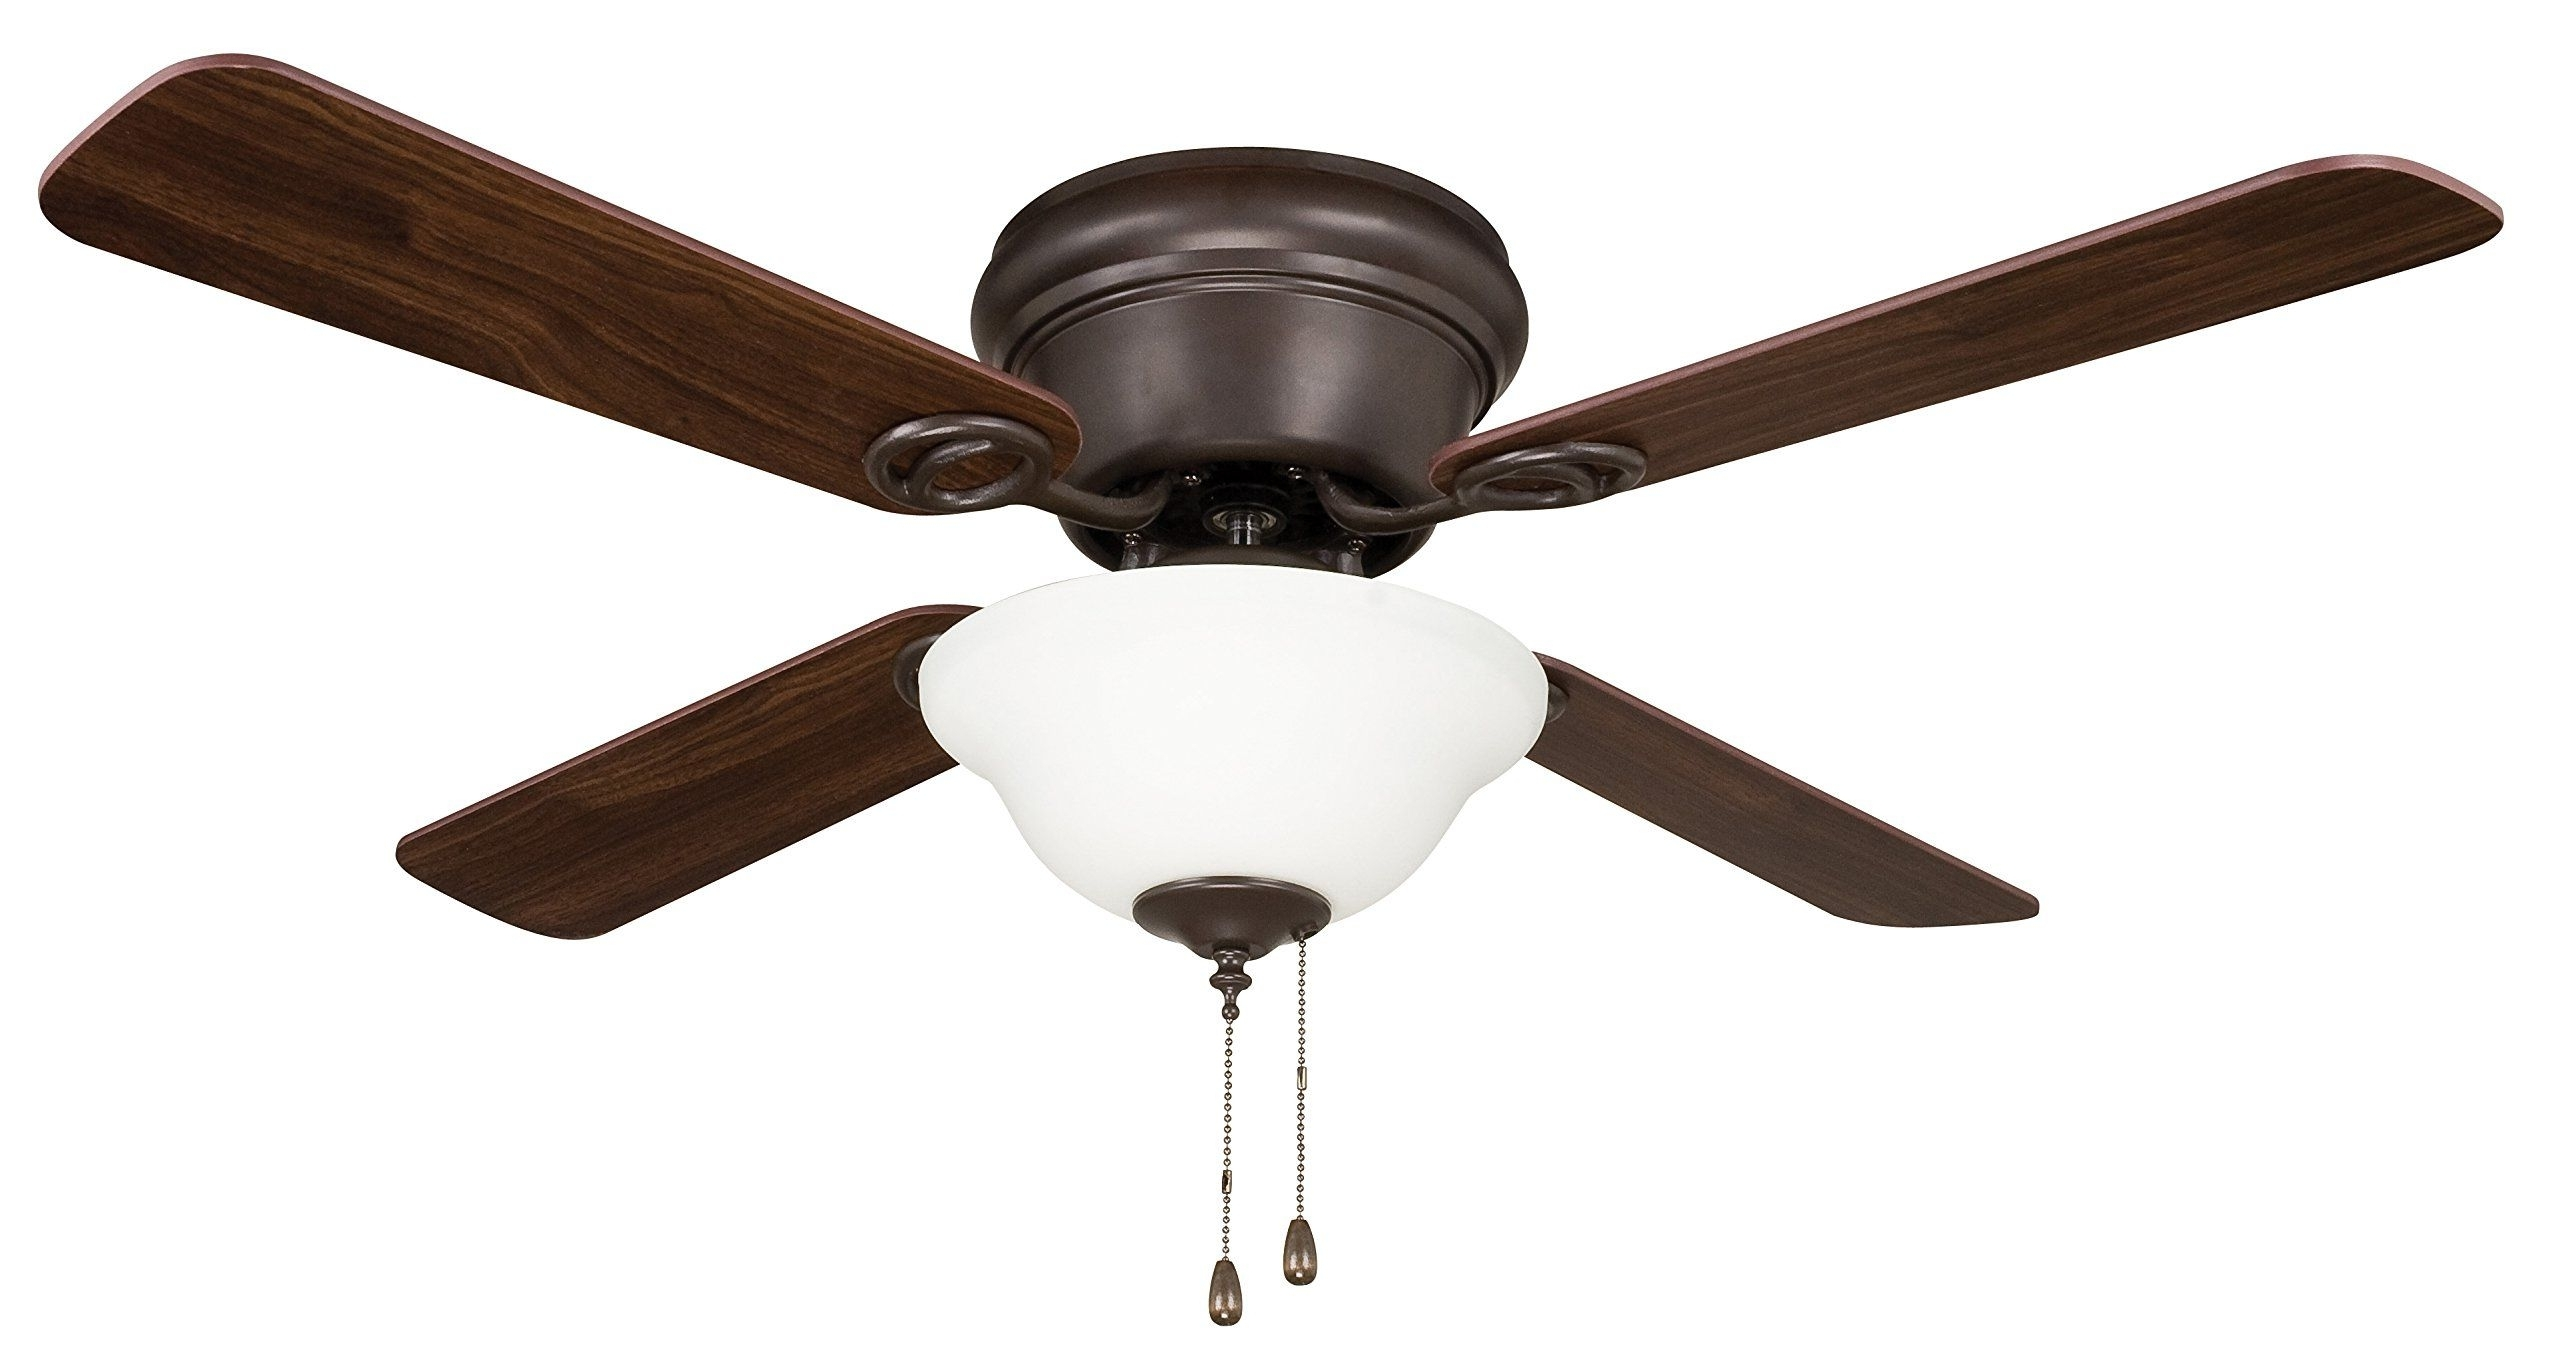 Well Known 42 Inch Outdoor Ceiling Fans With Lights Regarding Litex Wc42Orb4C1 Wyman Collection 42 Inch Ceiling Fan With Five (View 20 of 20)